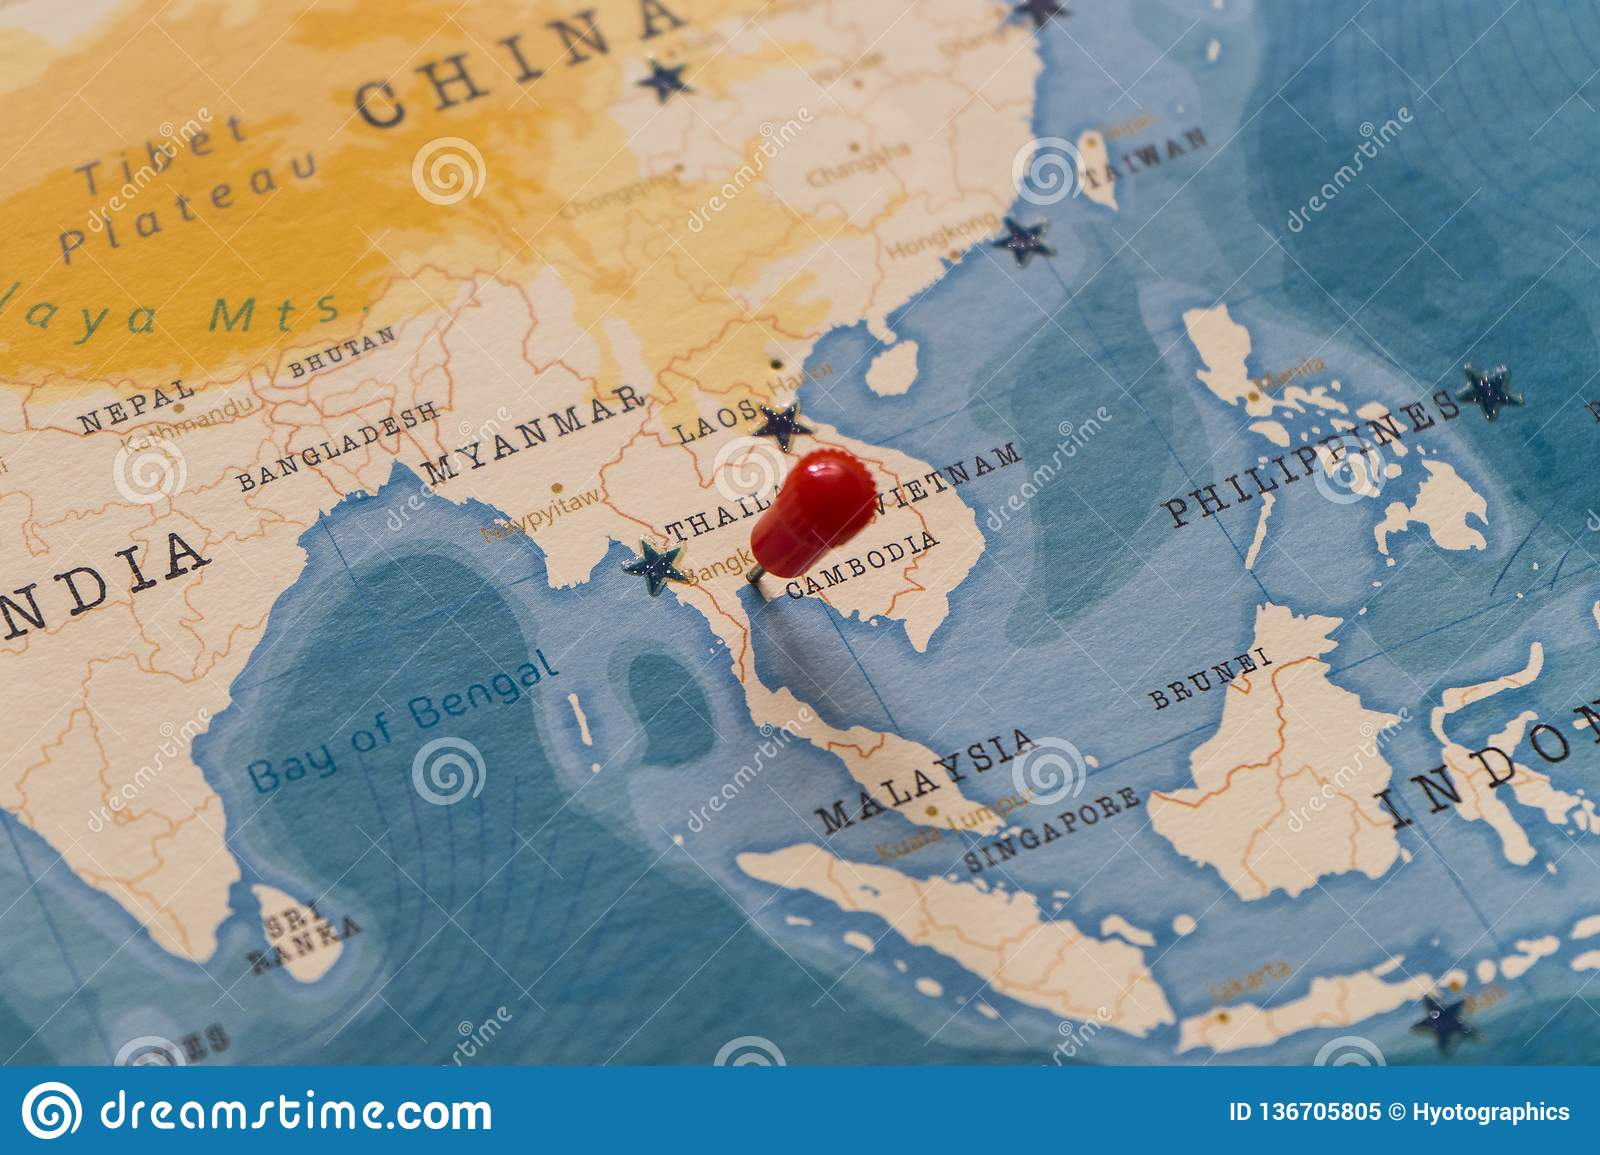 A pin on Bangkok, Thailand in the world map